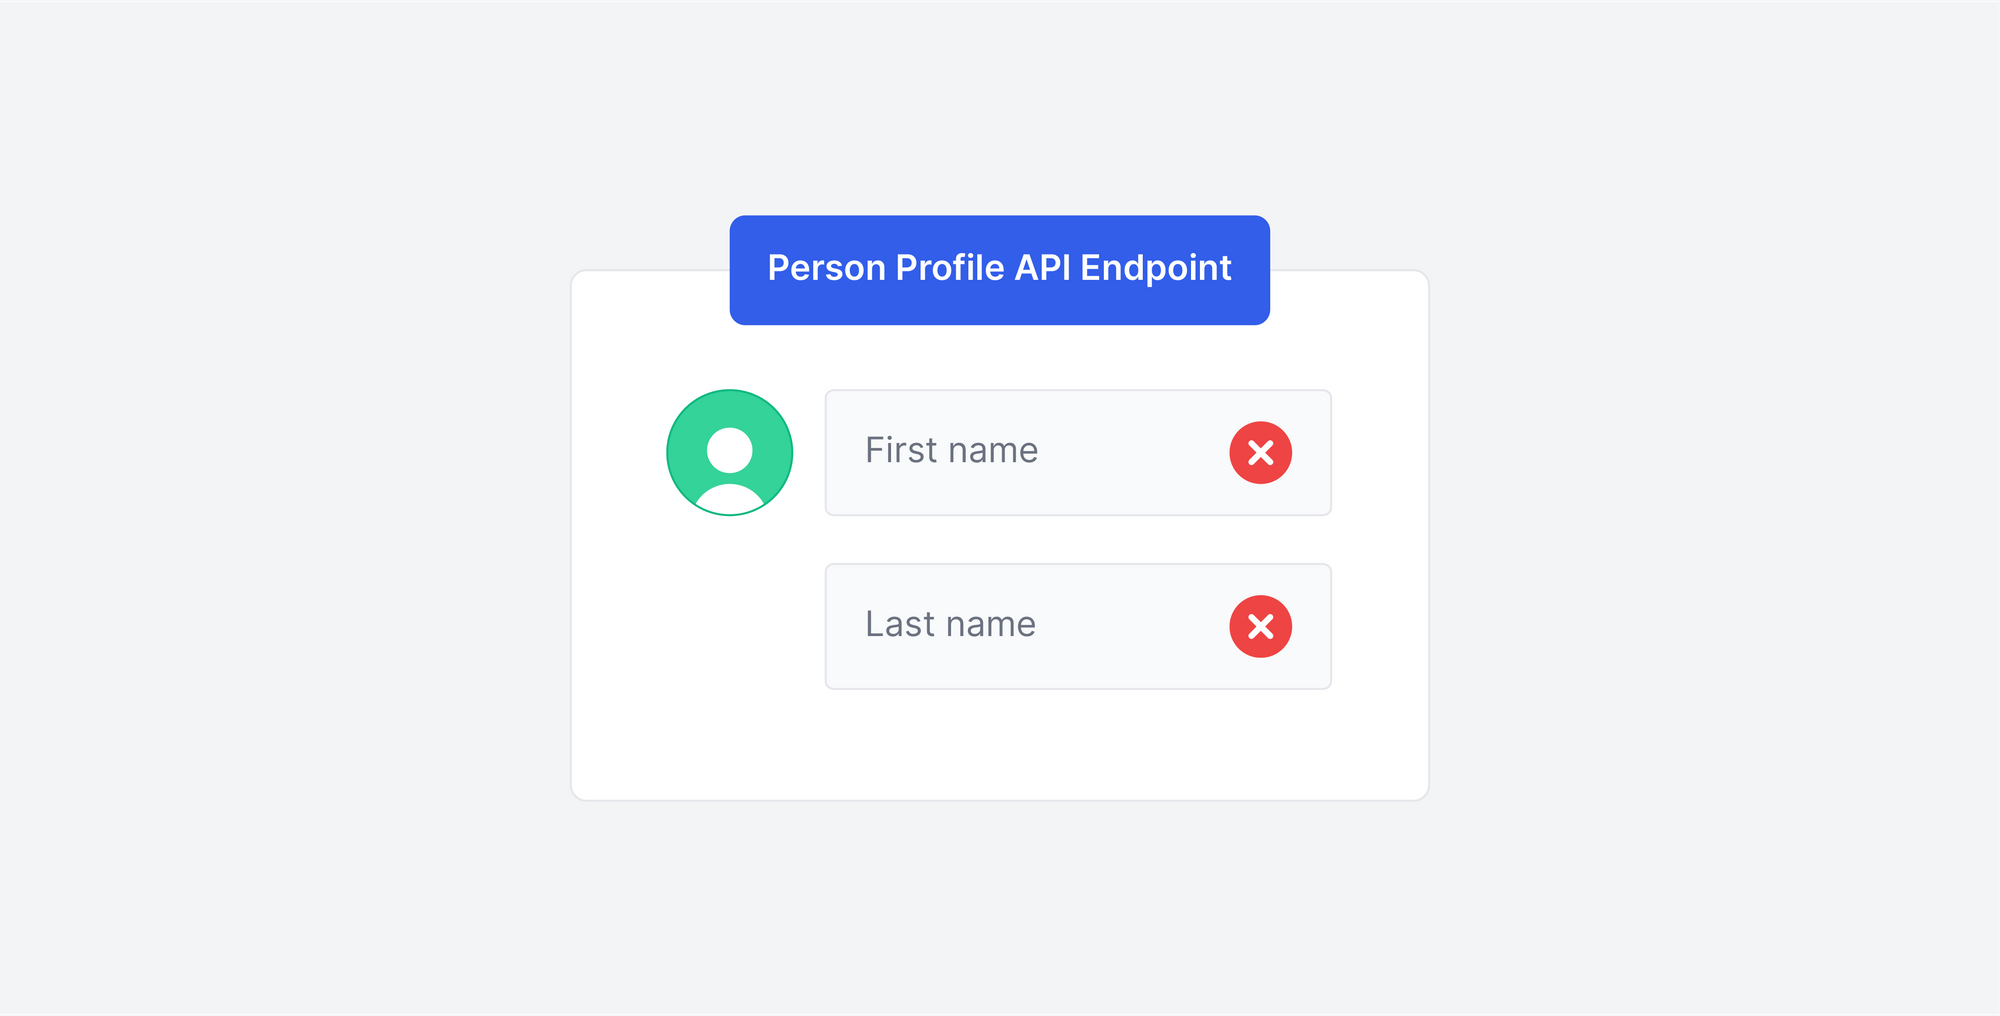 Why do the `first_name` and `last_name` return incorrectly sometimes in the Person Profile API Endpoint?